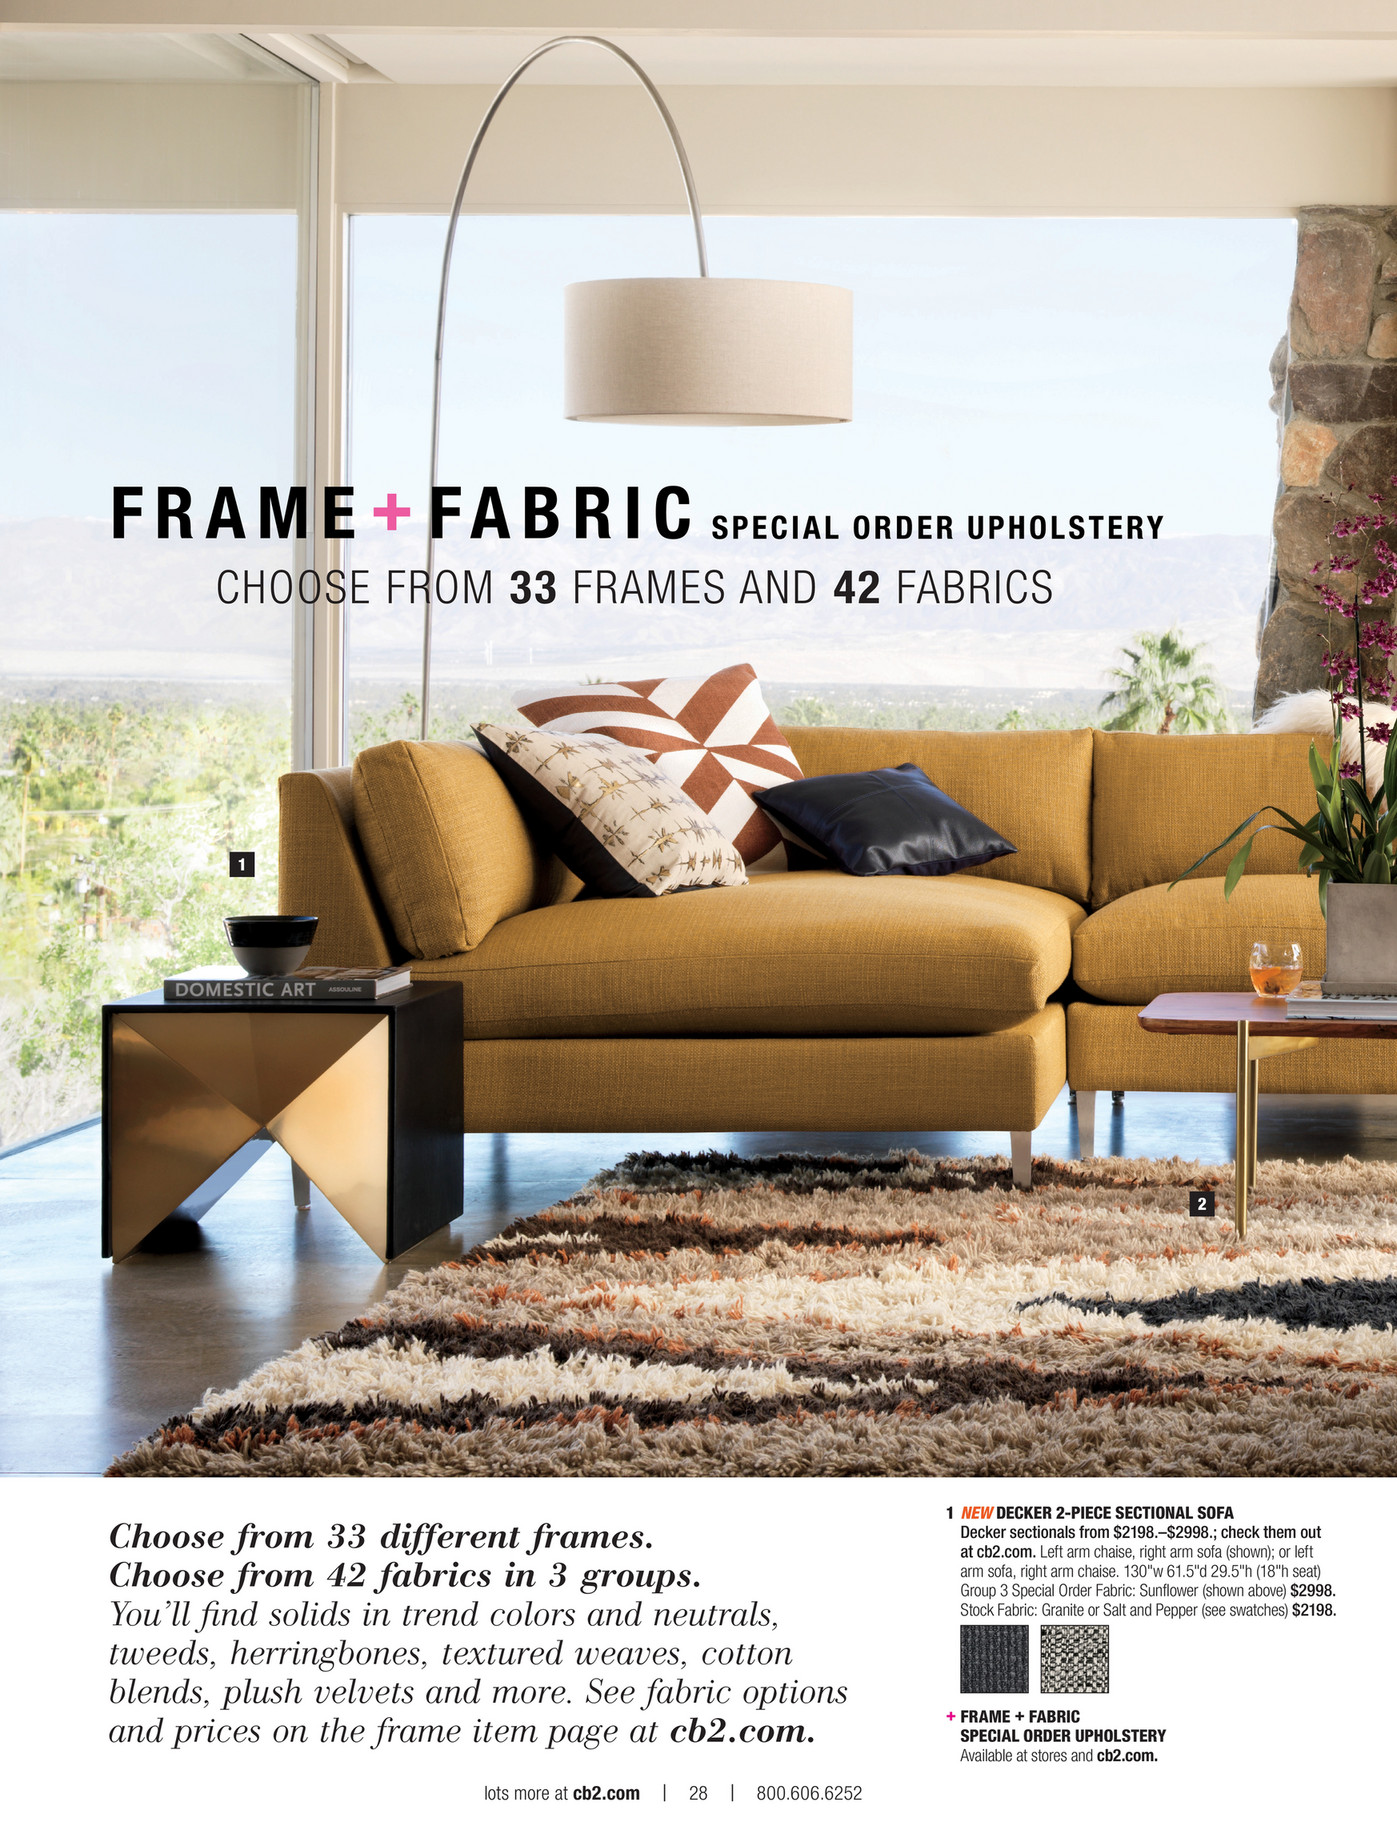 frame fabric special order upholstery available at stores and cb2com